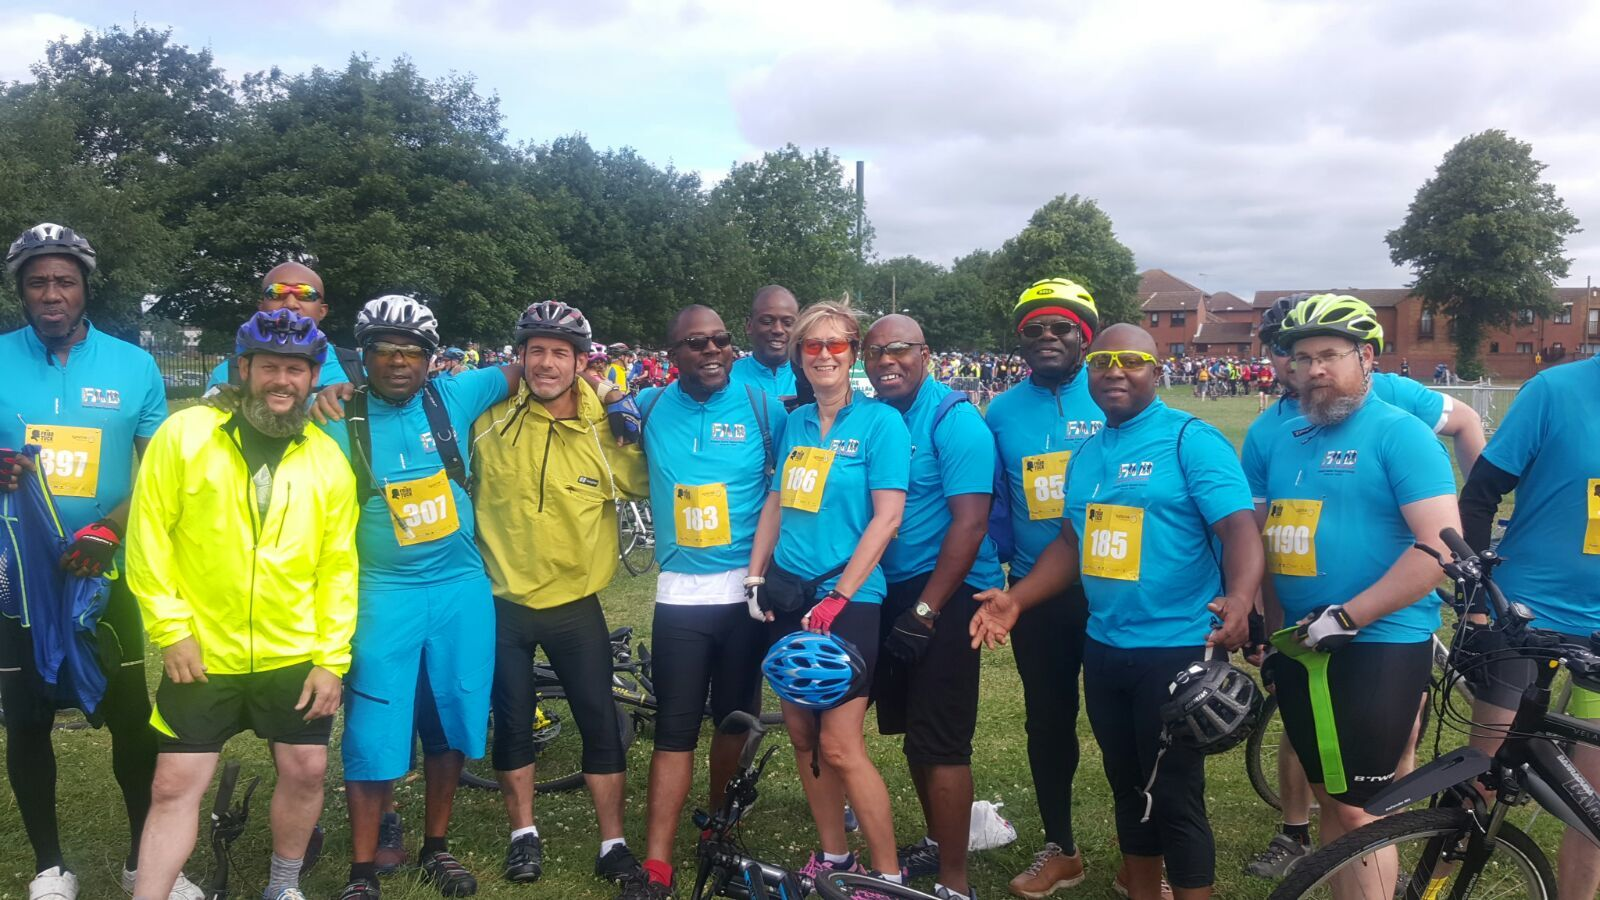 FAB Riders at Great Notts Bike Ride 24 June 2018